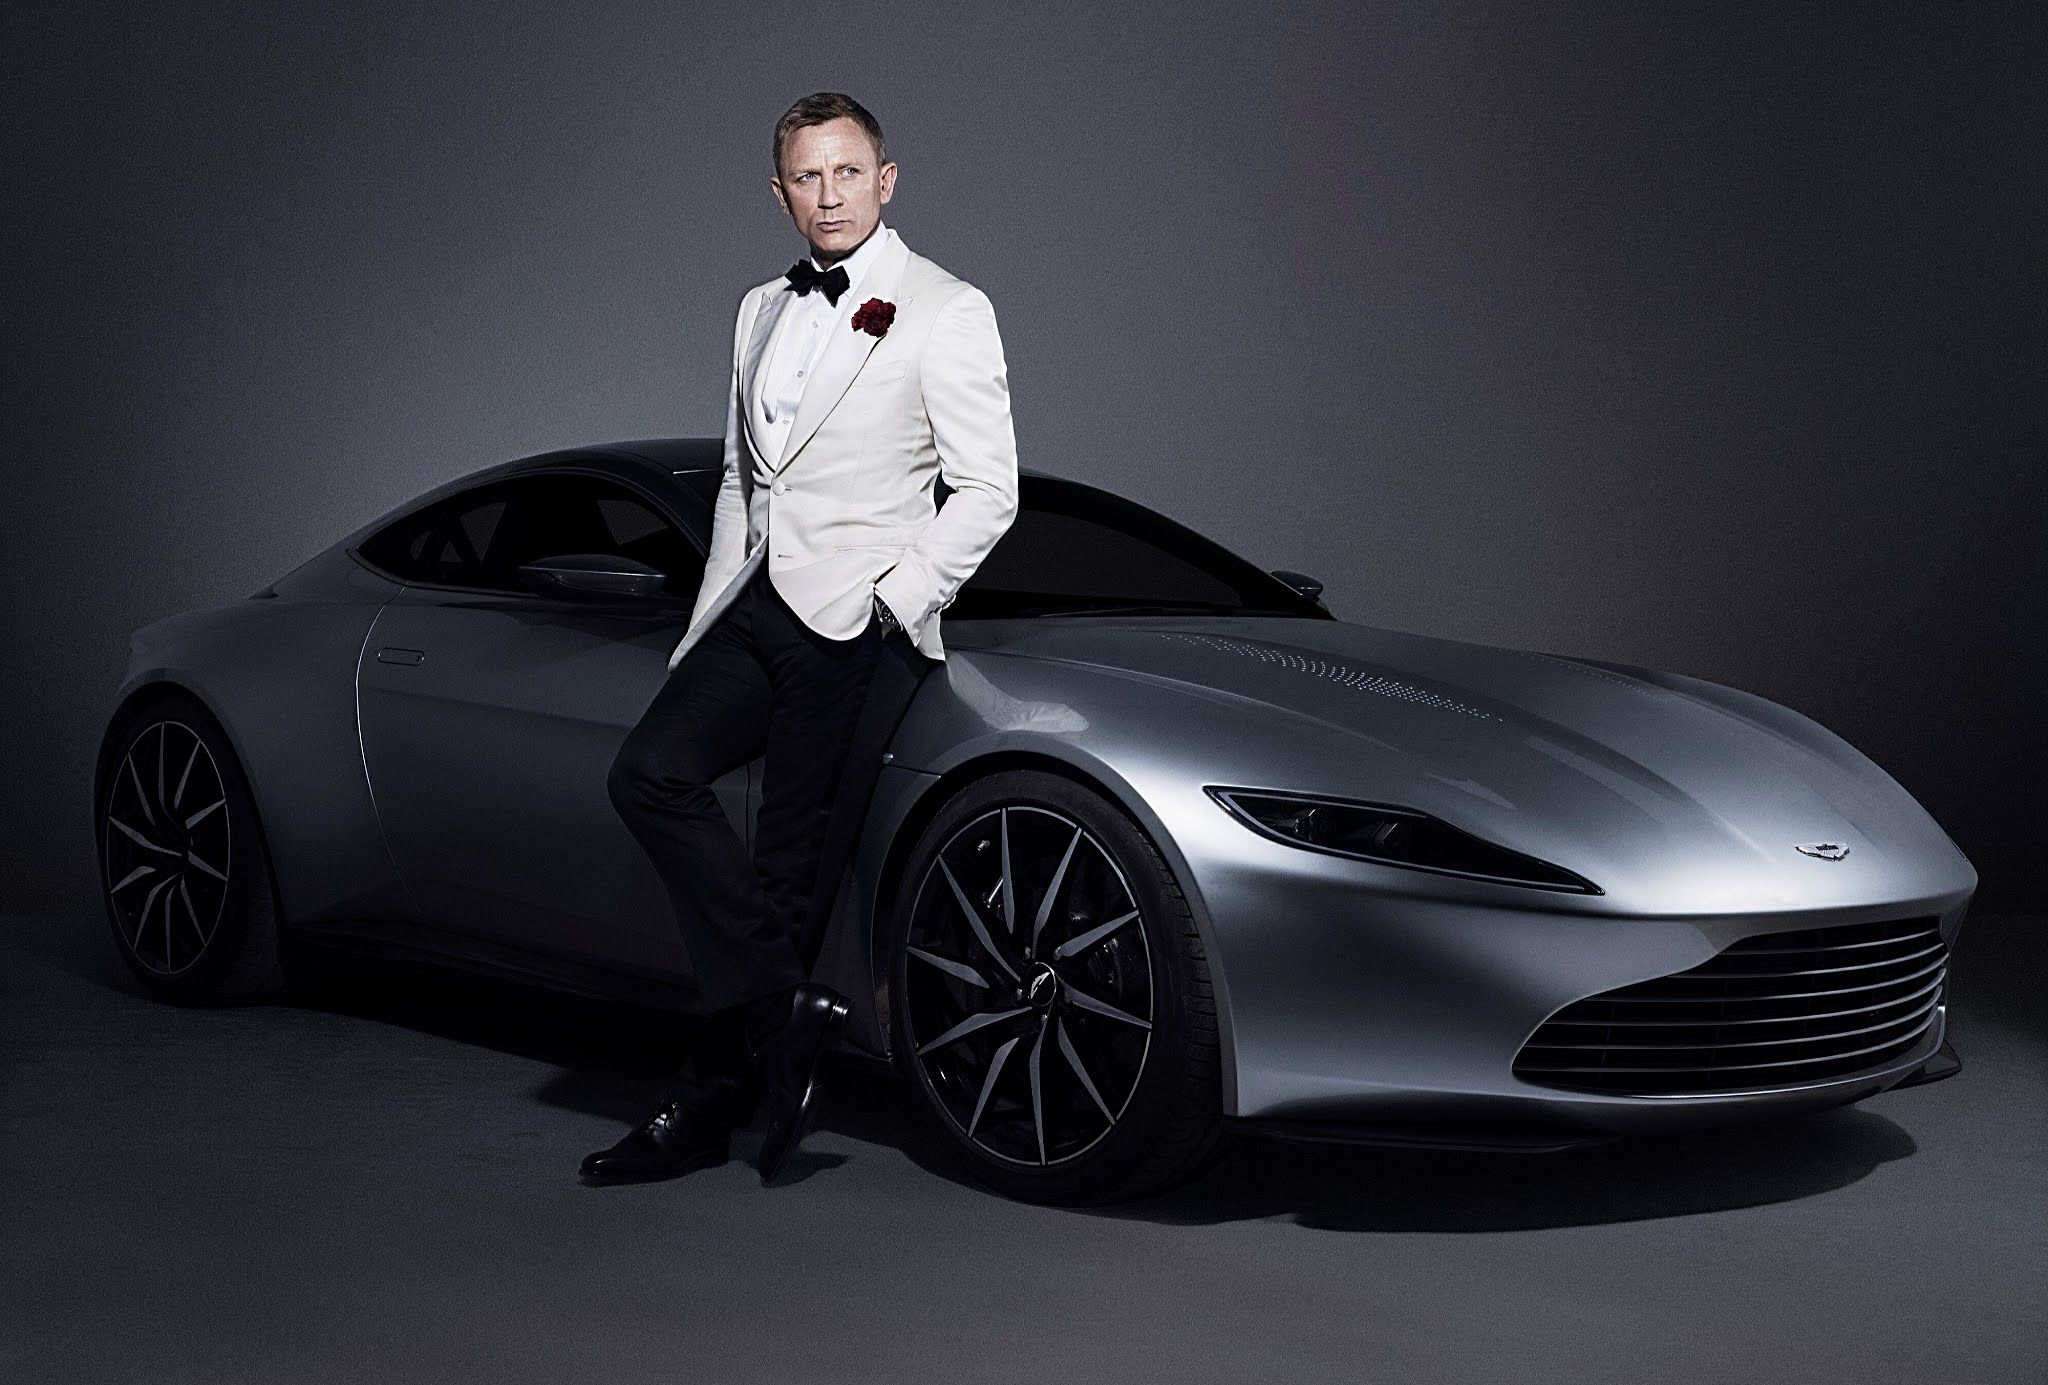 james bond, spectre, aston martin db10